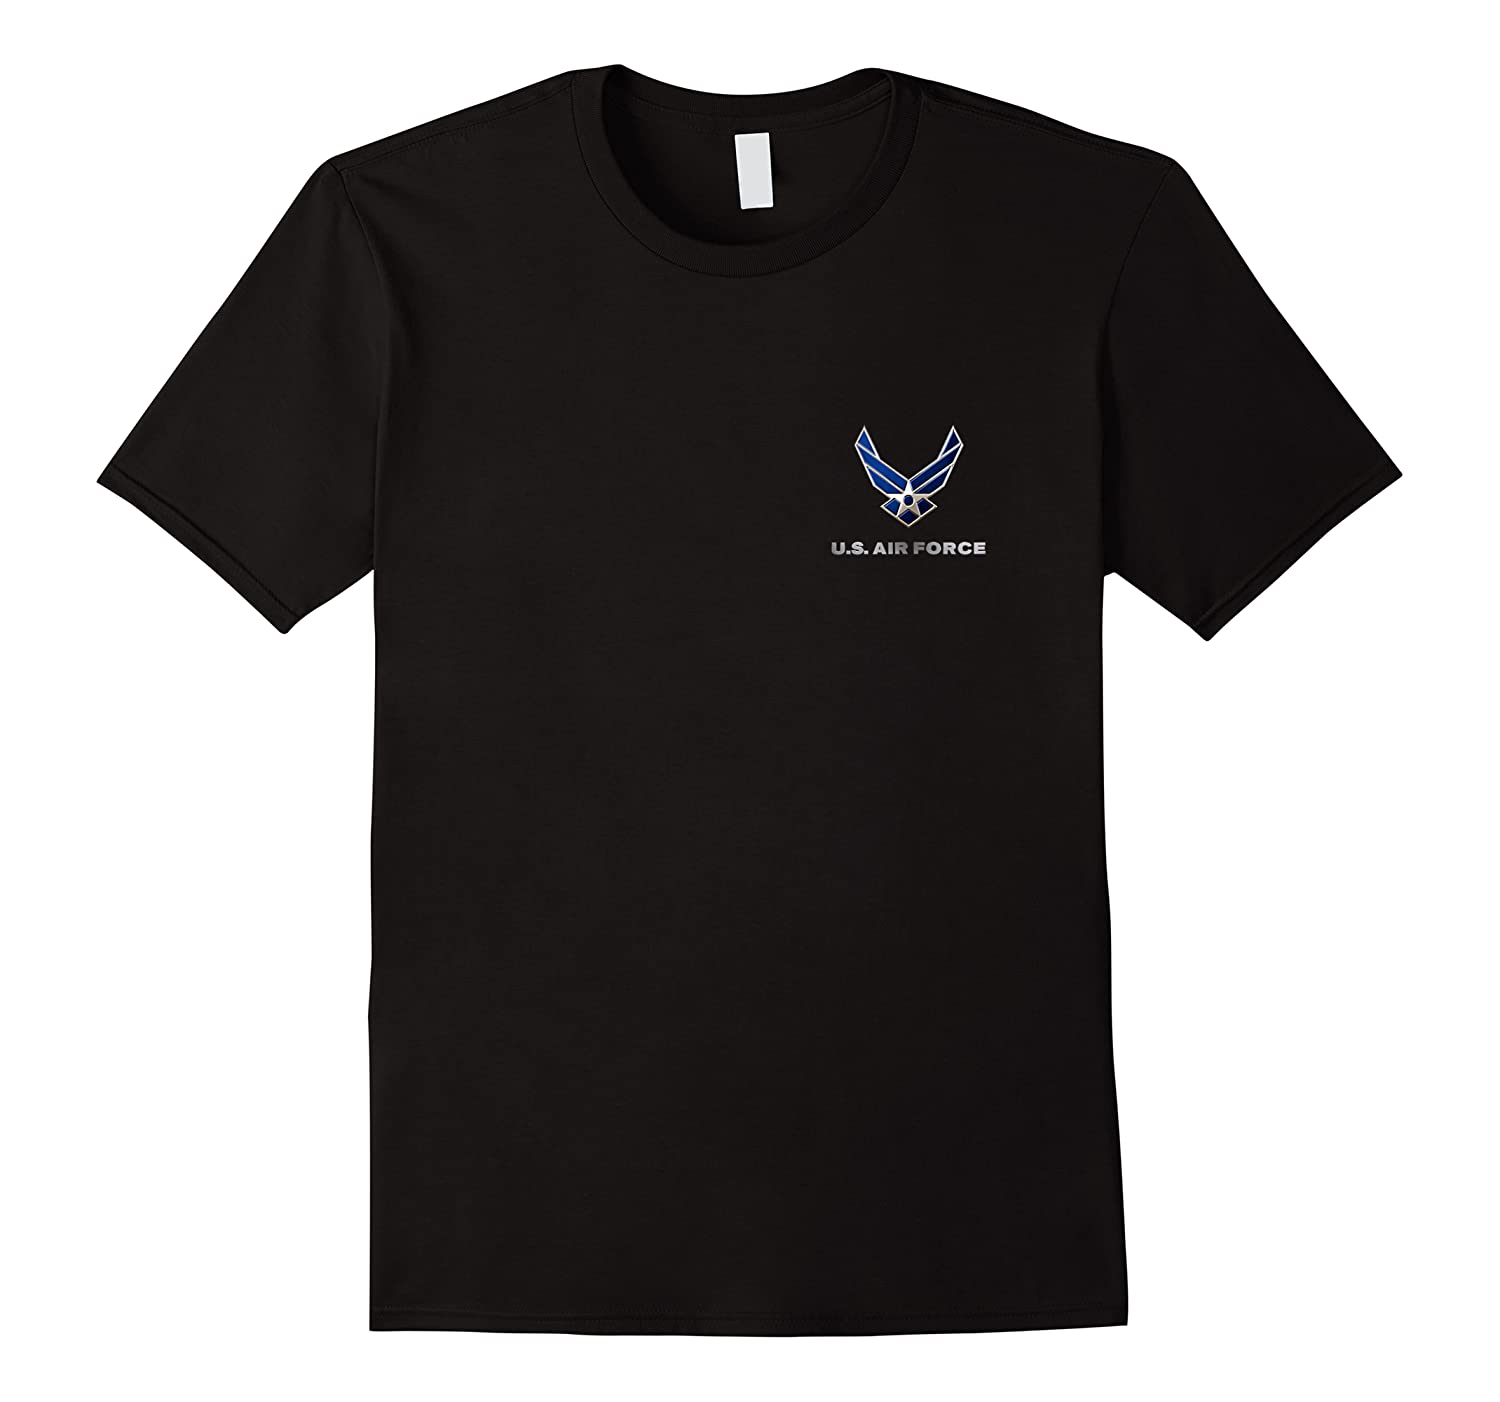 Air Force Meps Bmt Military Training Shirts